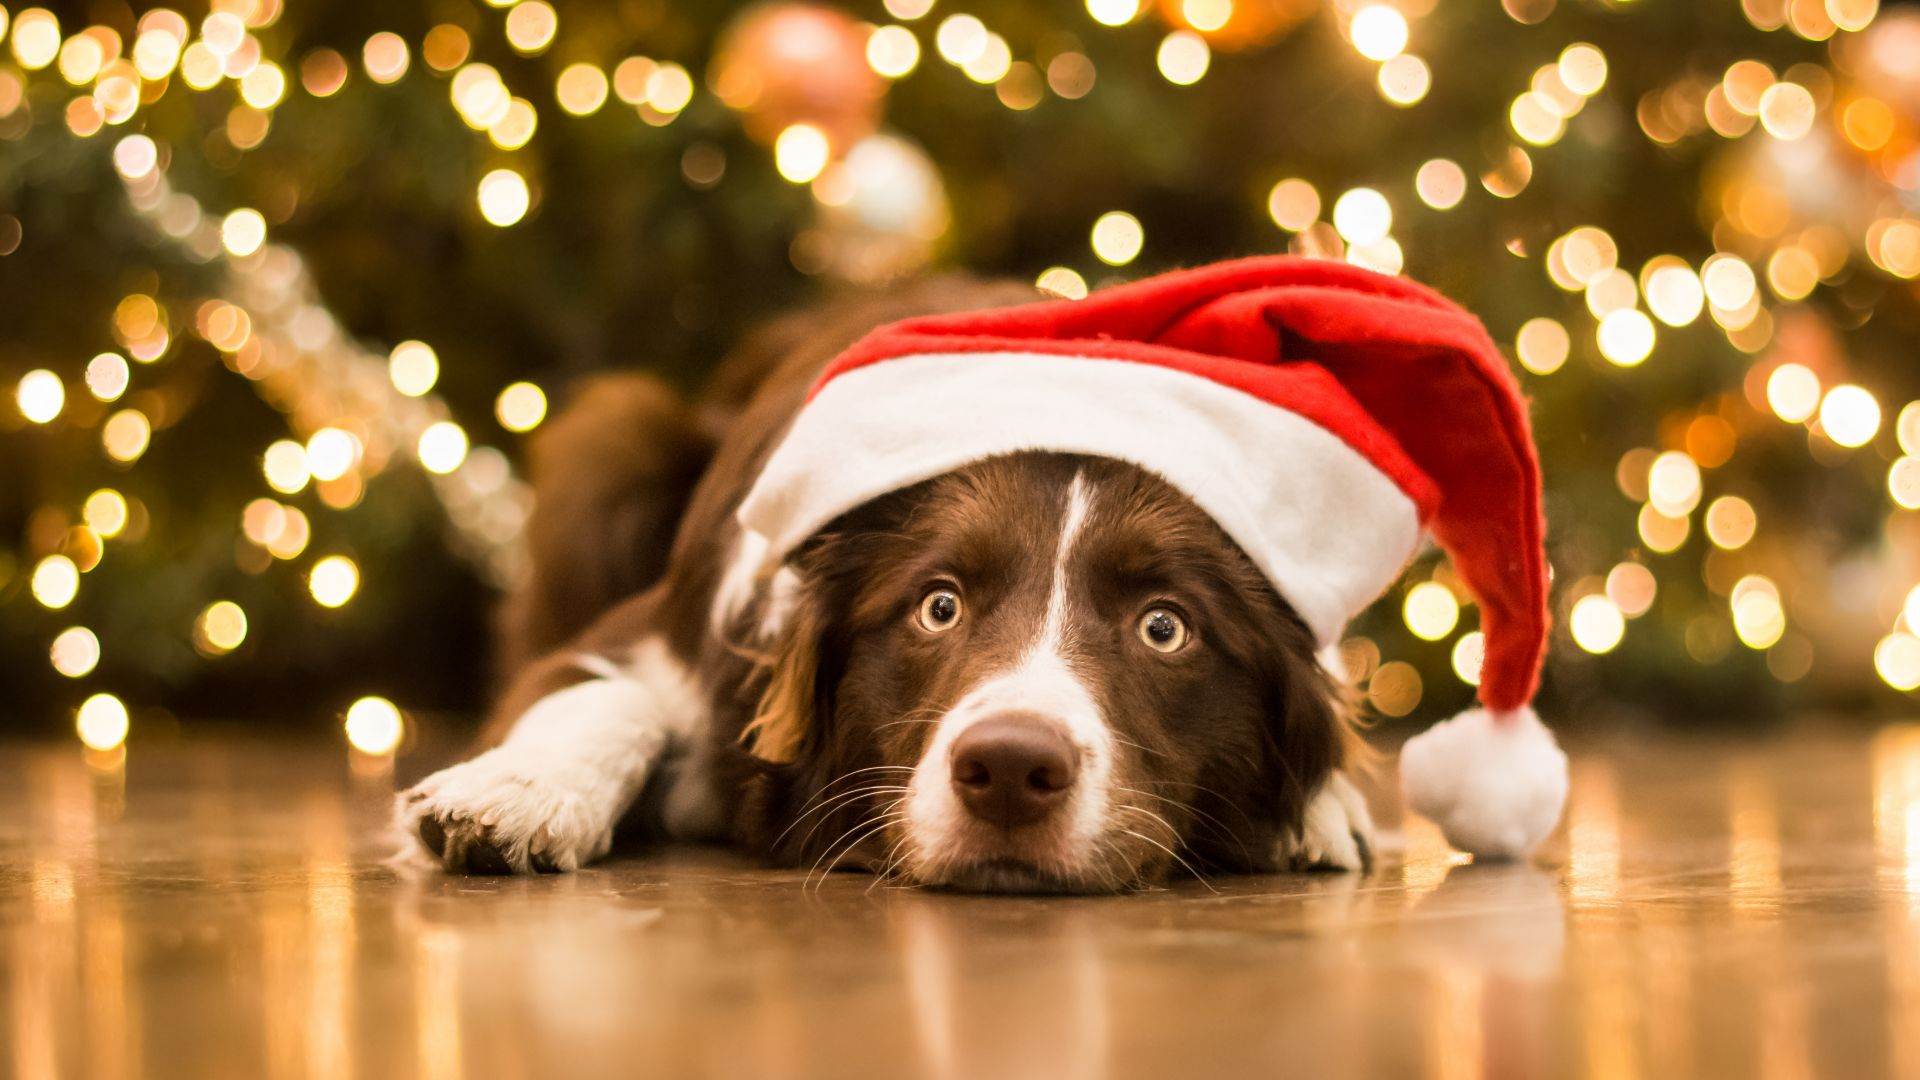 Christmas, New Year, dog, cute animals, 5k (horizontal)